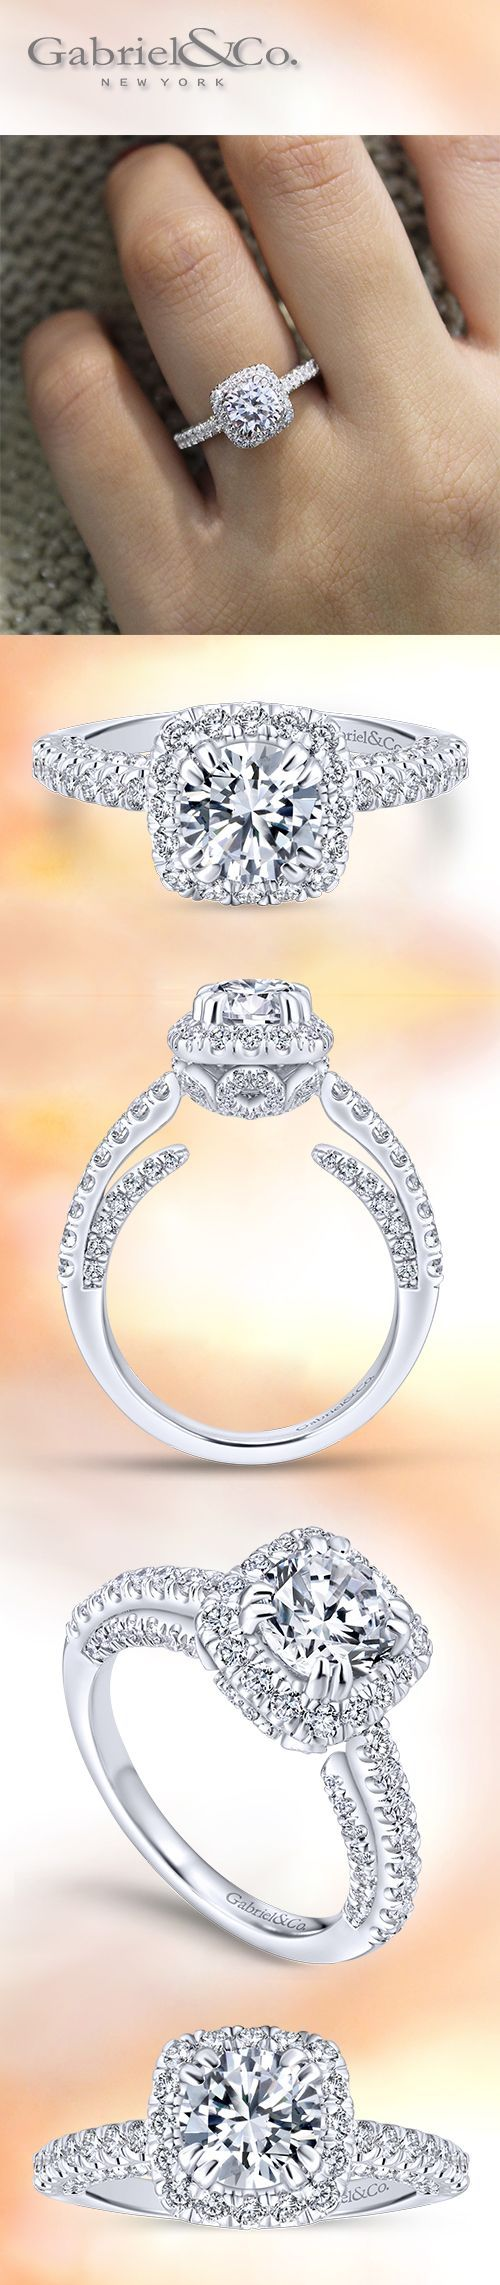 While the more unusual cuts of diamonds have been gathering momentum - Voted Most Preferred Bridal Brand With A Criss Cross Style Diamond Band And Diamond Halo This Engagement Ring Will Enhance Your Round Cut Center Stone